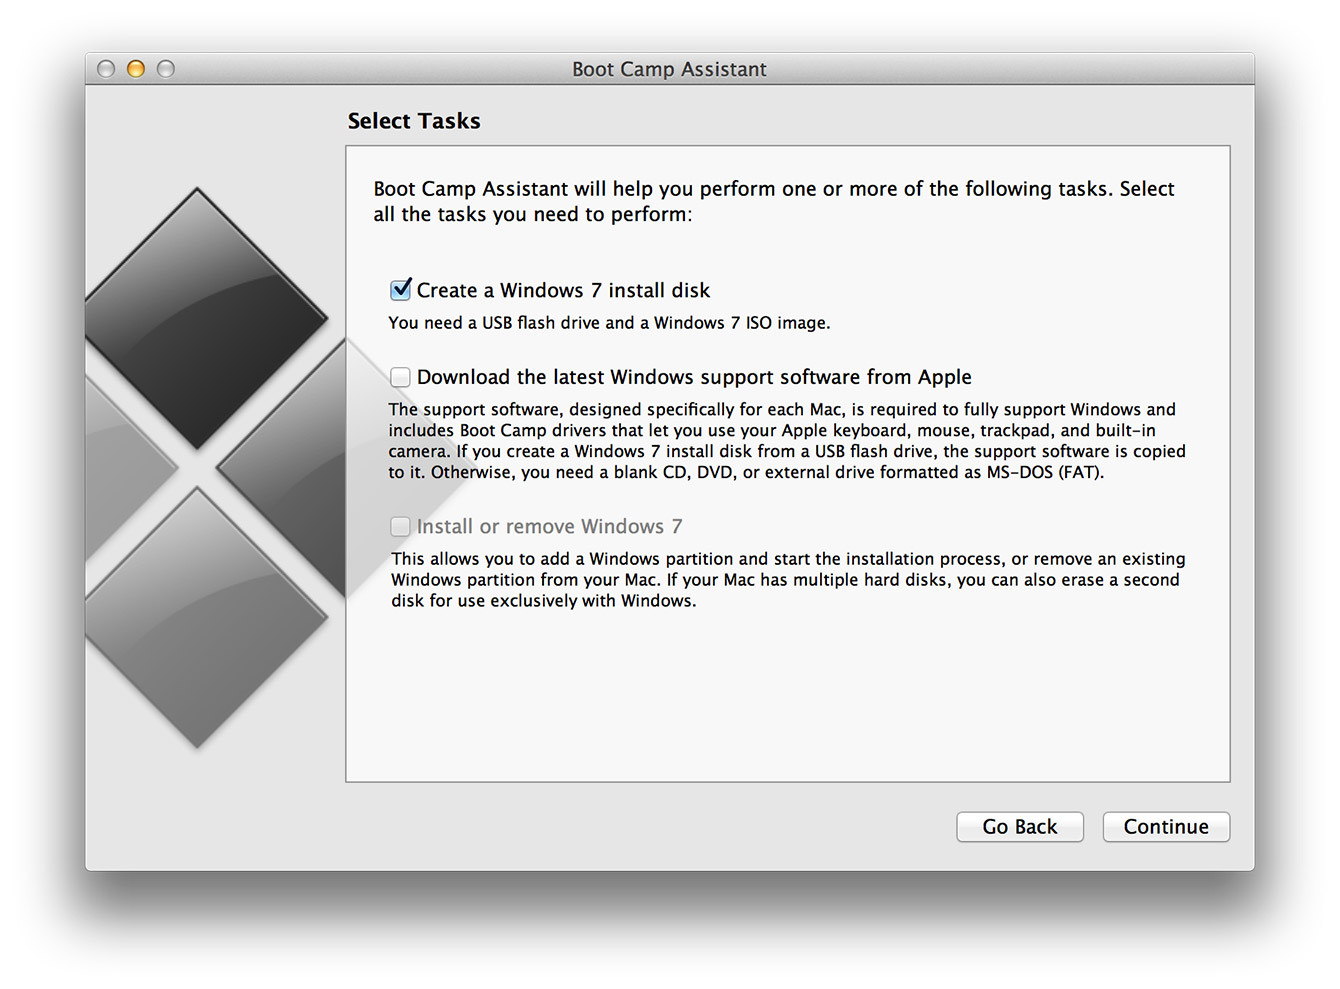 OSX Boot Camp Assistant - Select Tasks